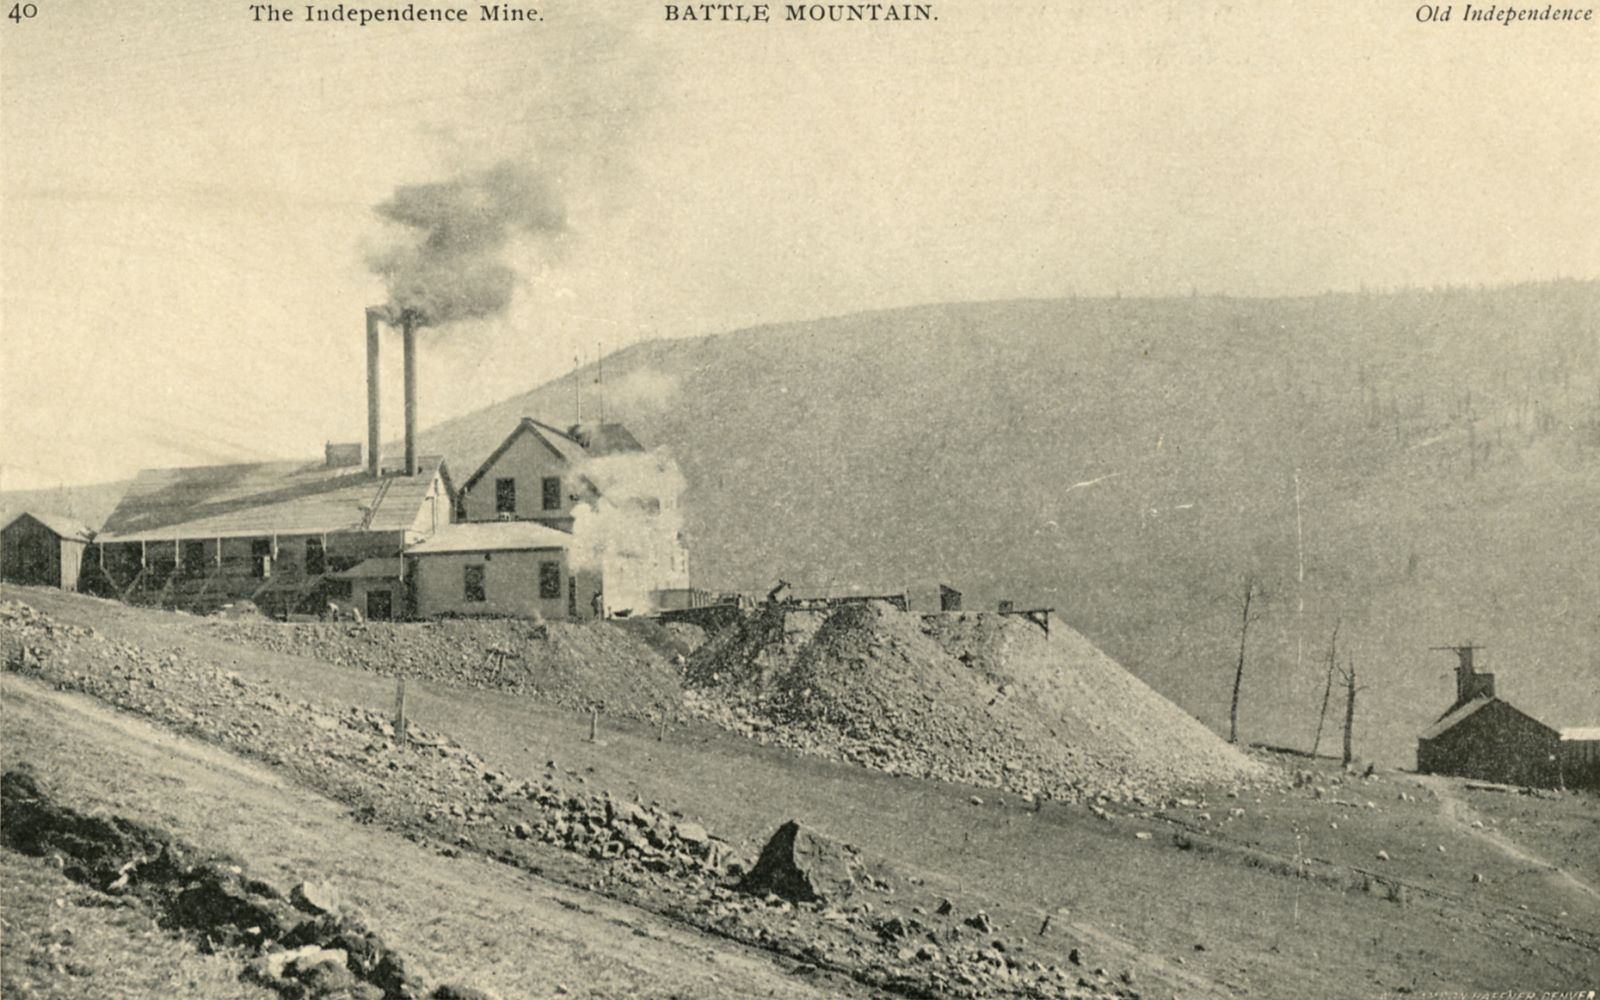 This view looking in direction of east is showing the large surface structures of the Independence Mine (No. 1 shaft) on the left-hand side and the smaller original shaft house and ore-bin of the Old Independence Mine on the right-hand side, ore-house is only partly seen, being cut off in the view from the 1896 book, while the DPL view has some more of it. In just a year or so this scene would have changed very and the old shaft house will be gone forever and in that location a small mill – at first – shall be erected, and later a large ore-house and mill will fill that space and also further east and north.